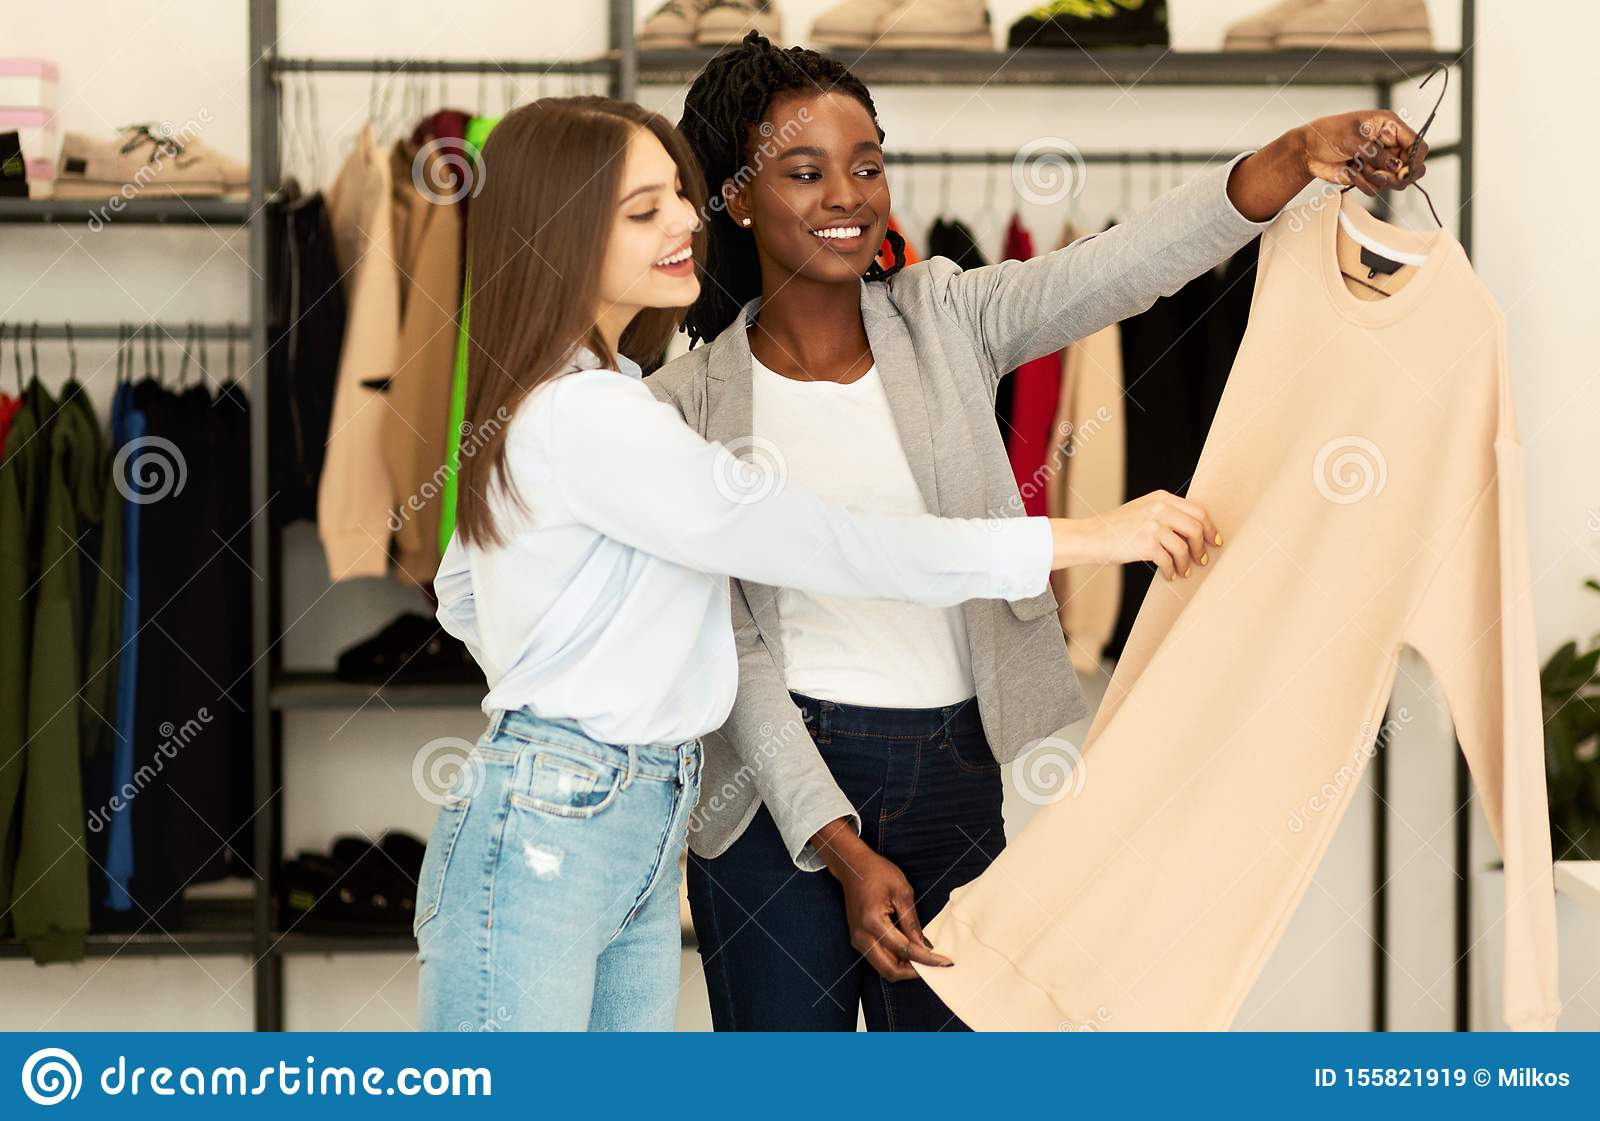 Personal Fashion Stylist And Client Choosing Designer Clothing In Showroom Stock Image Image Of Customer Personal 155821919